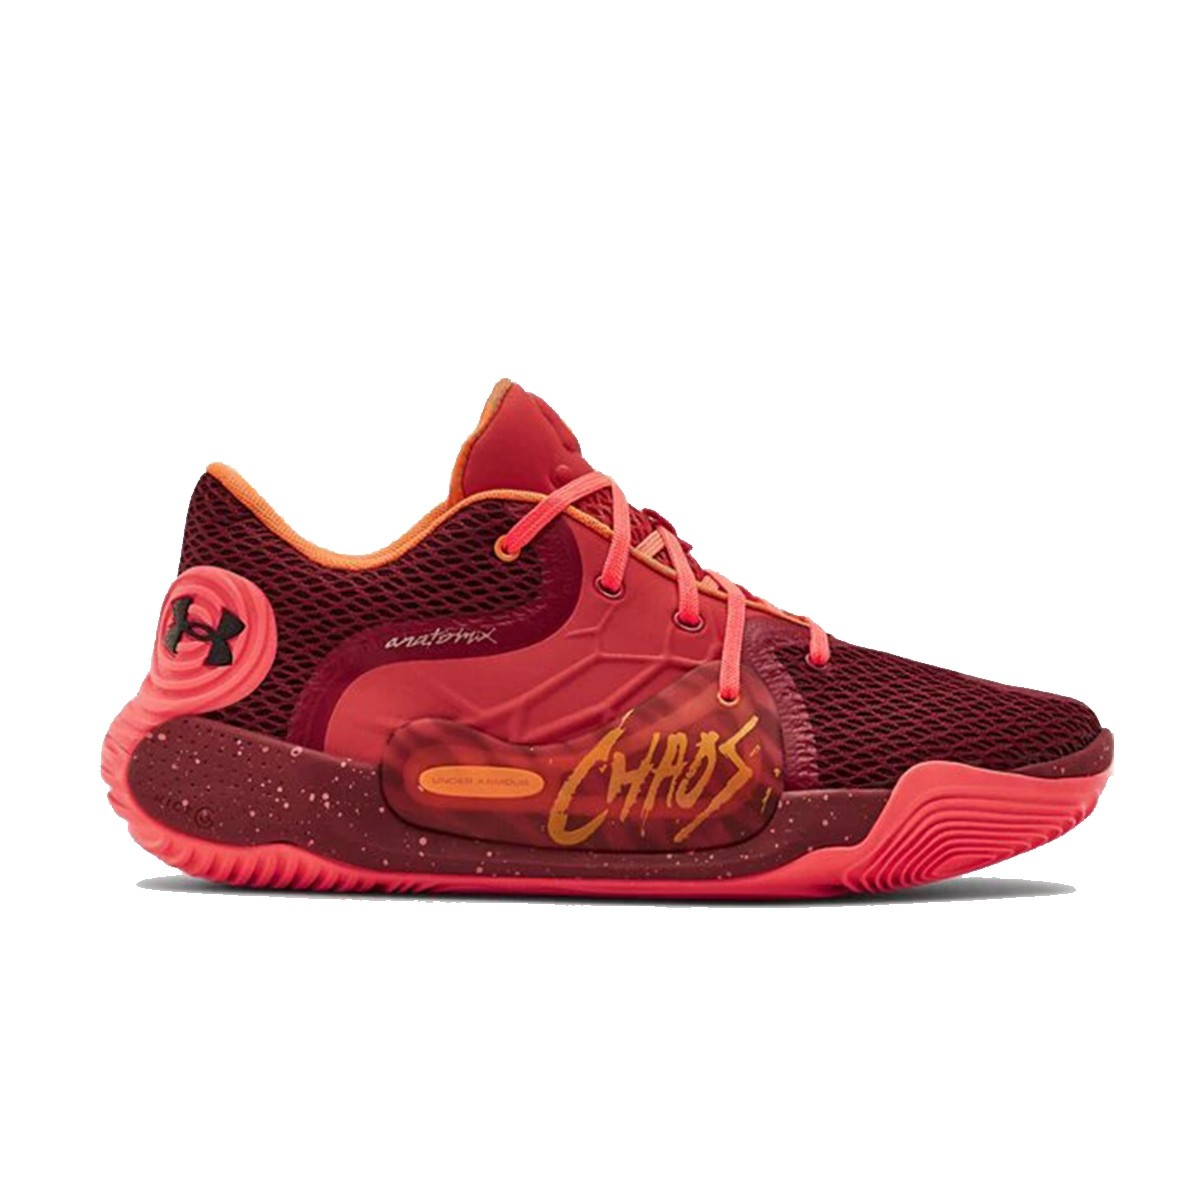 Under Armour Spawn Low II Jr 'Chaos Fire'-3022626-600-Jr